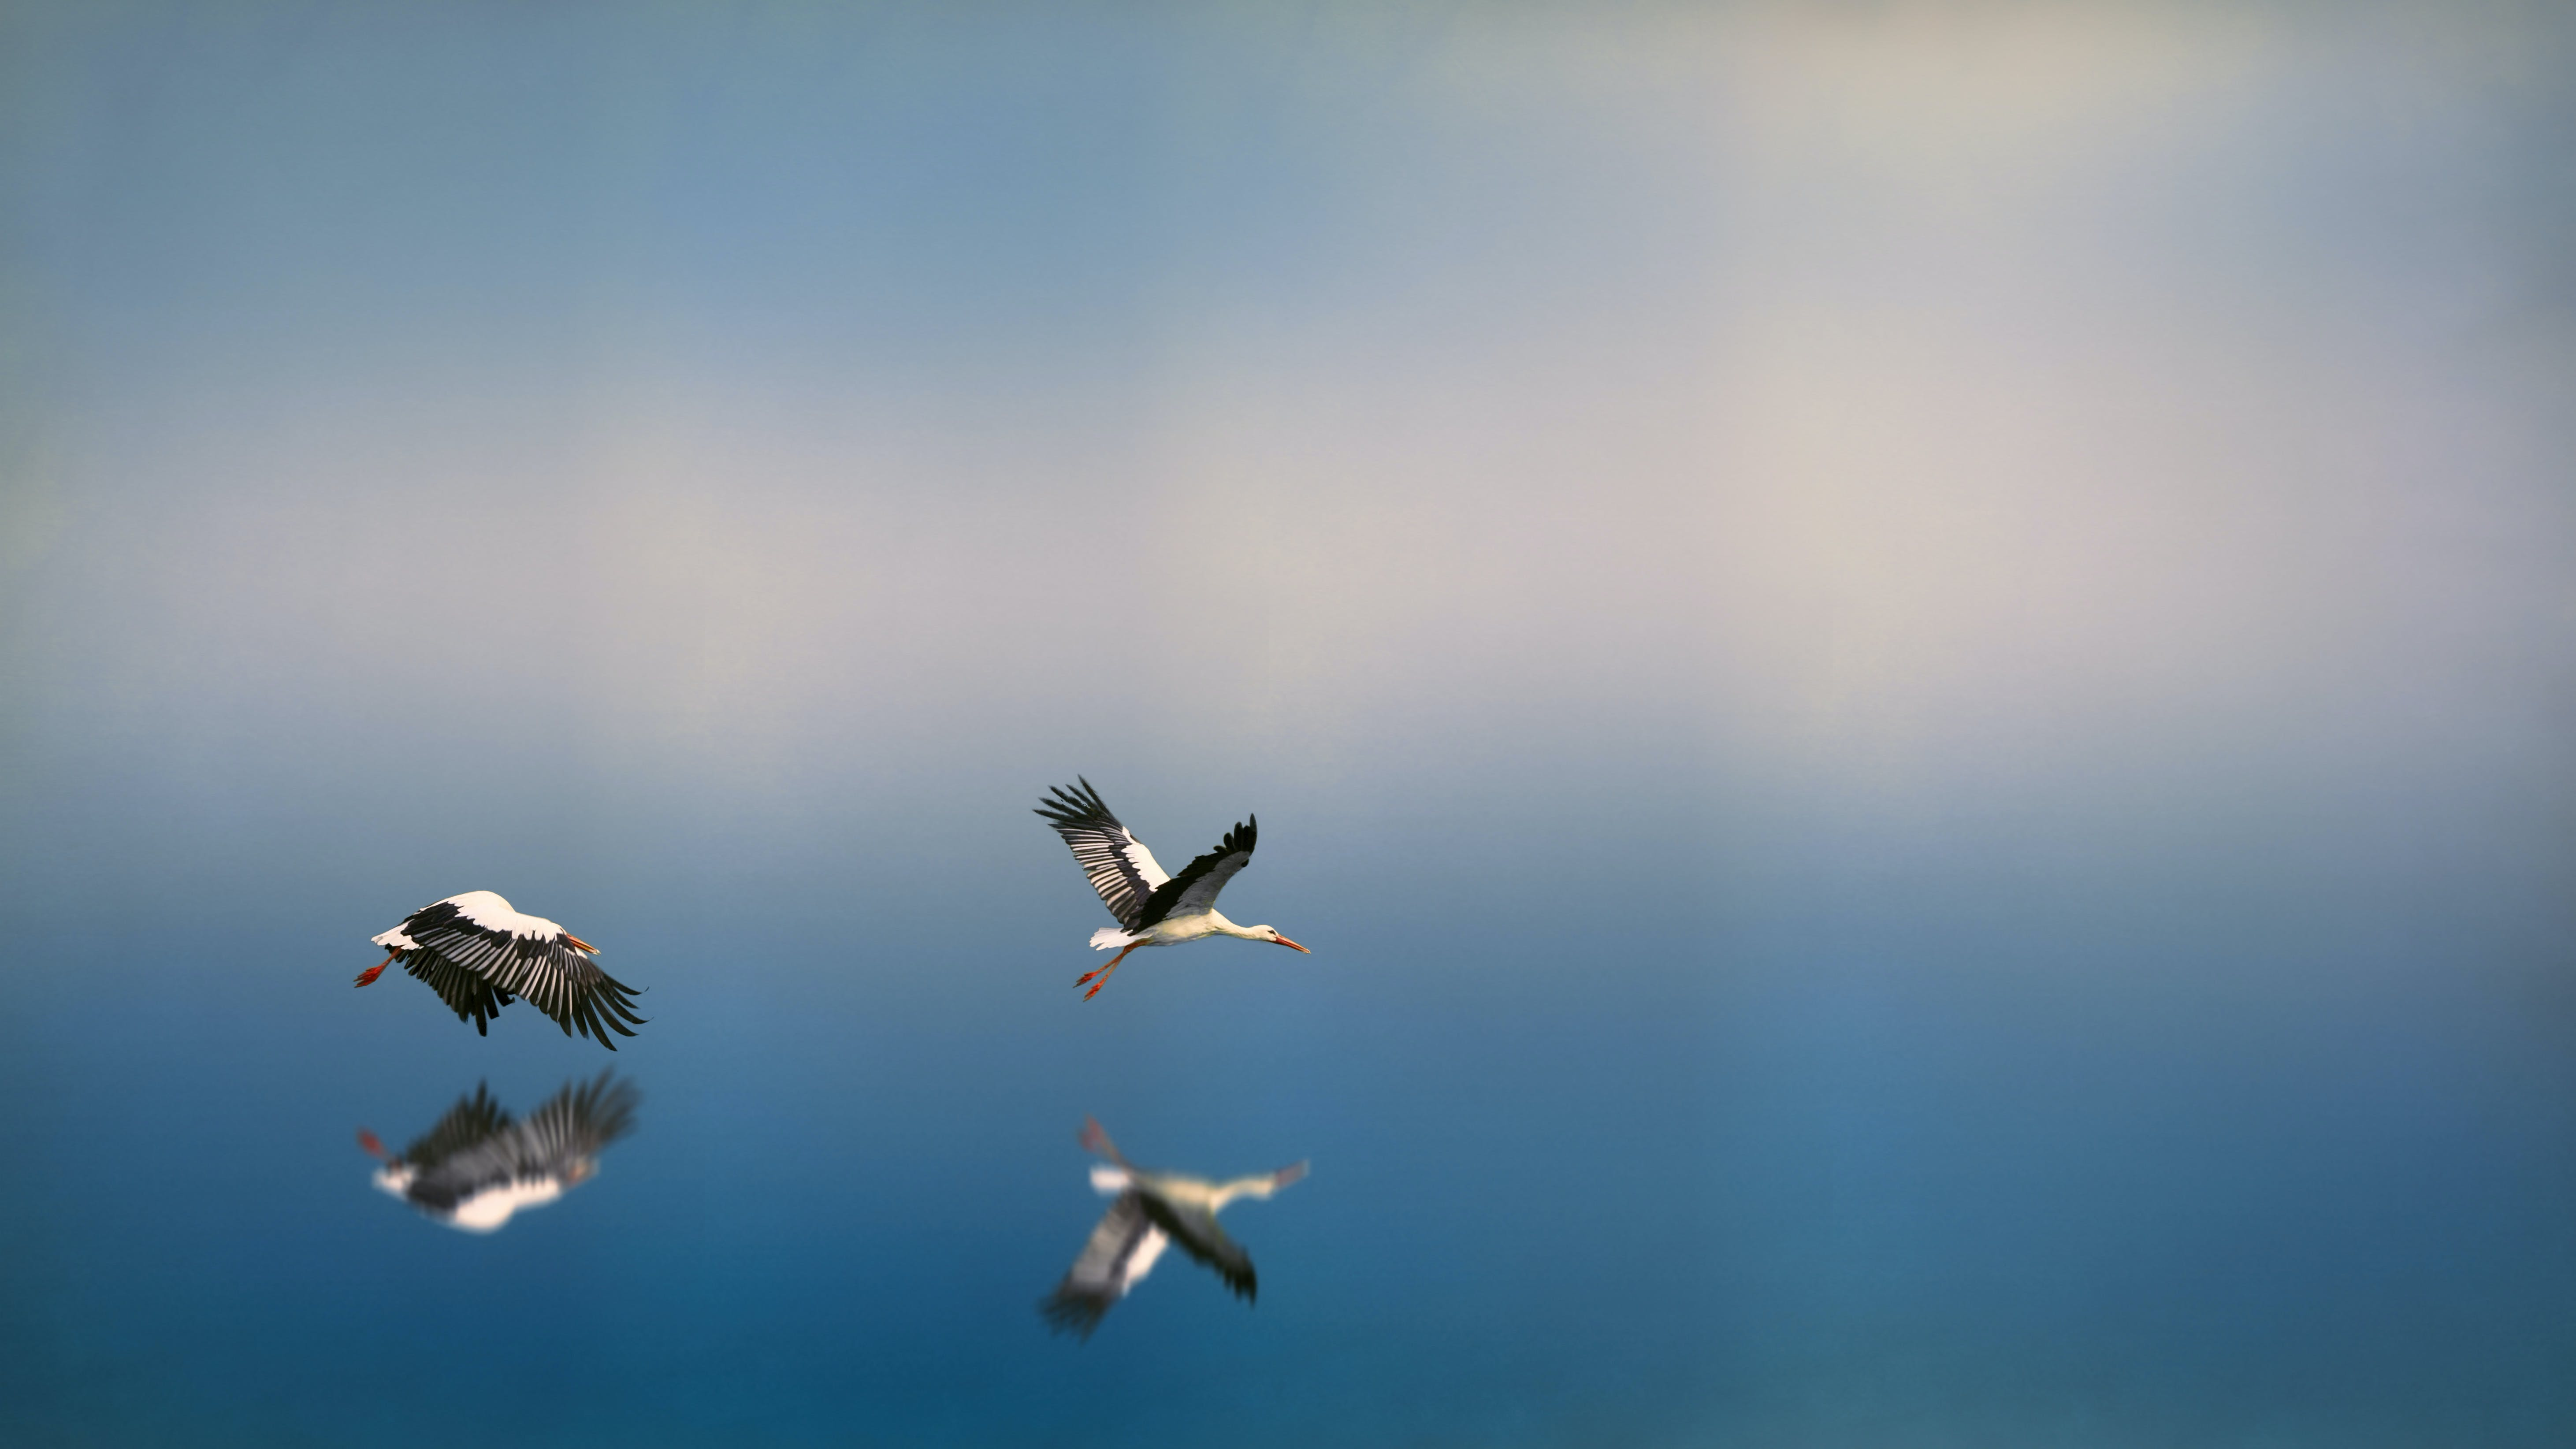 Seagulls Flying Above Body Of Water